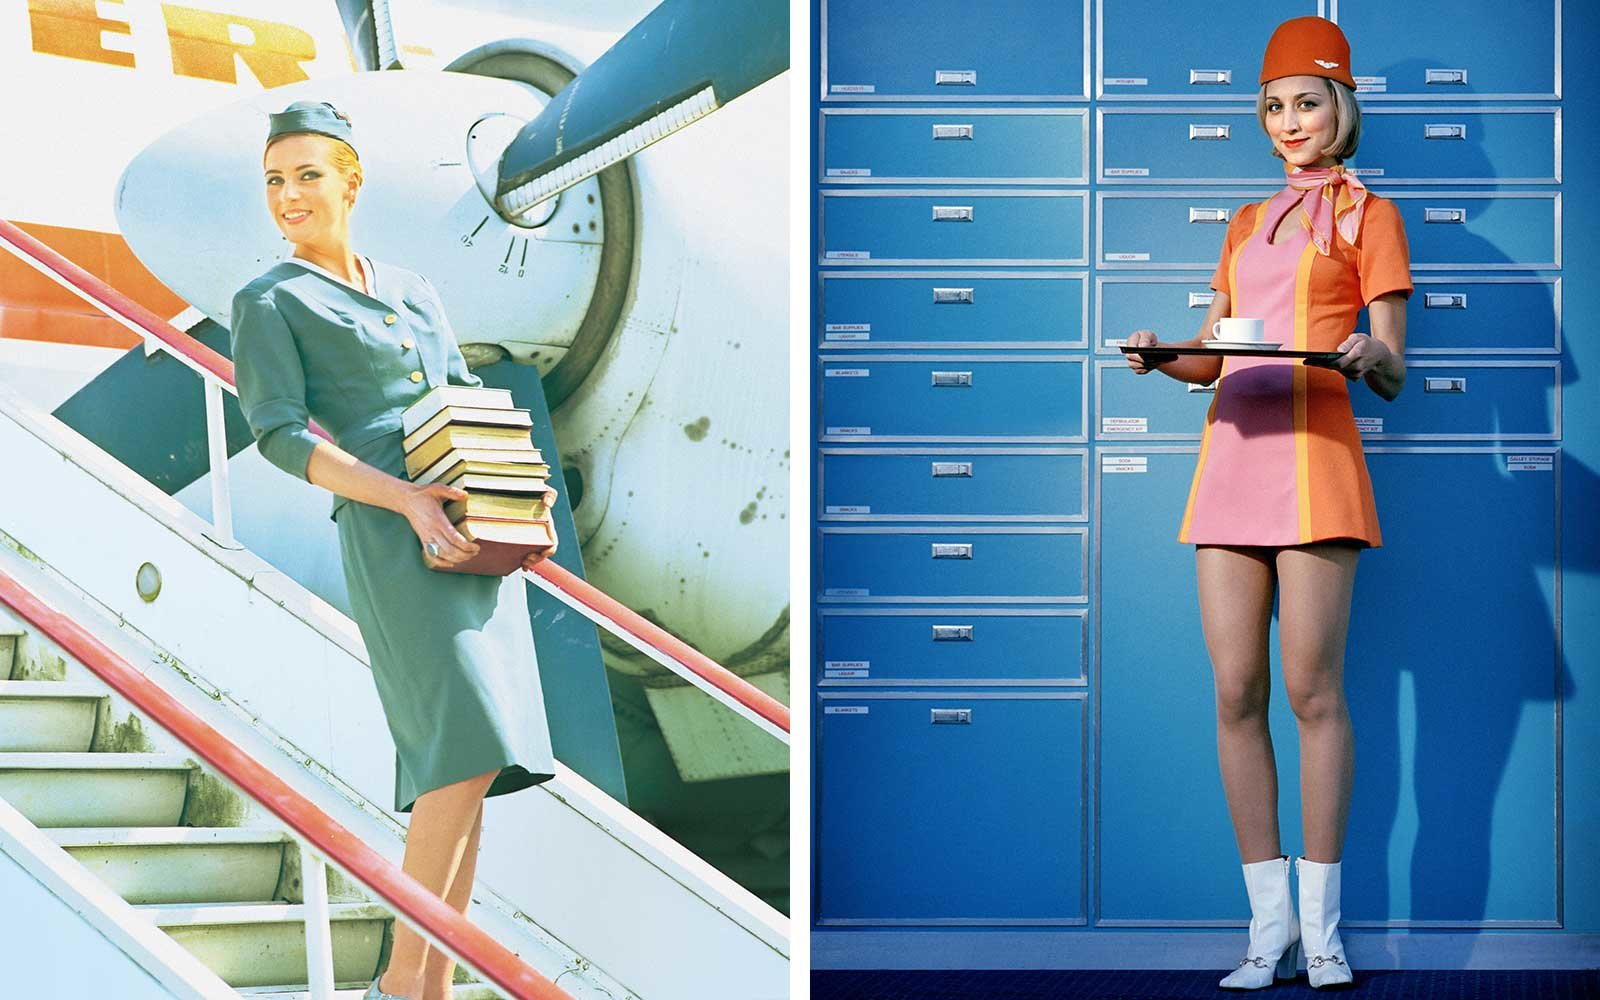 Sexist flight attendant study